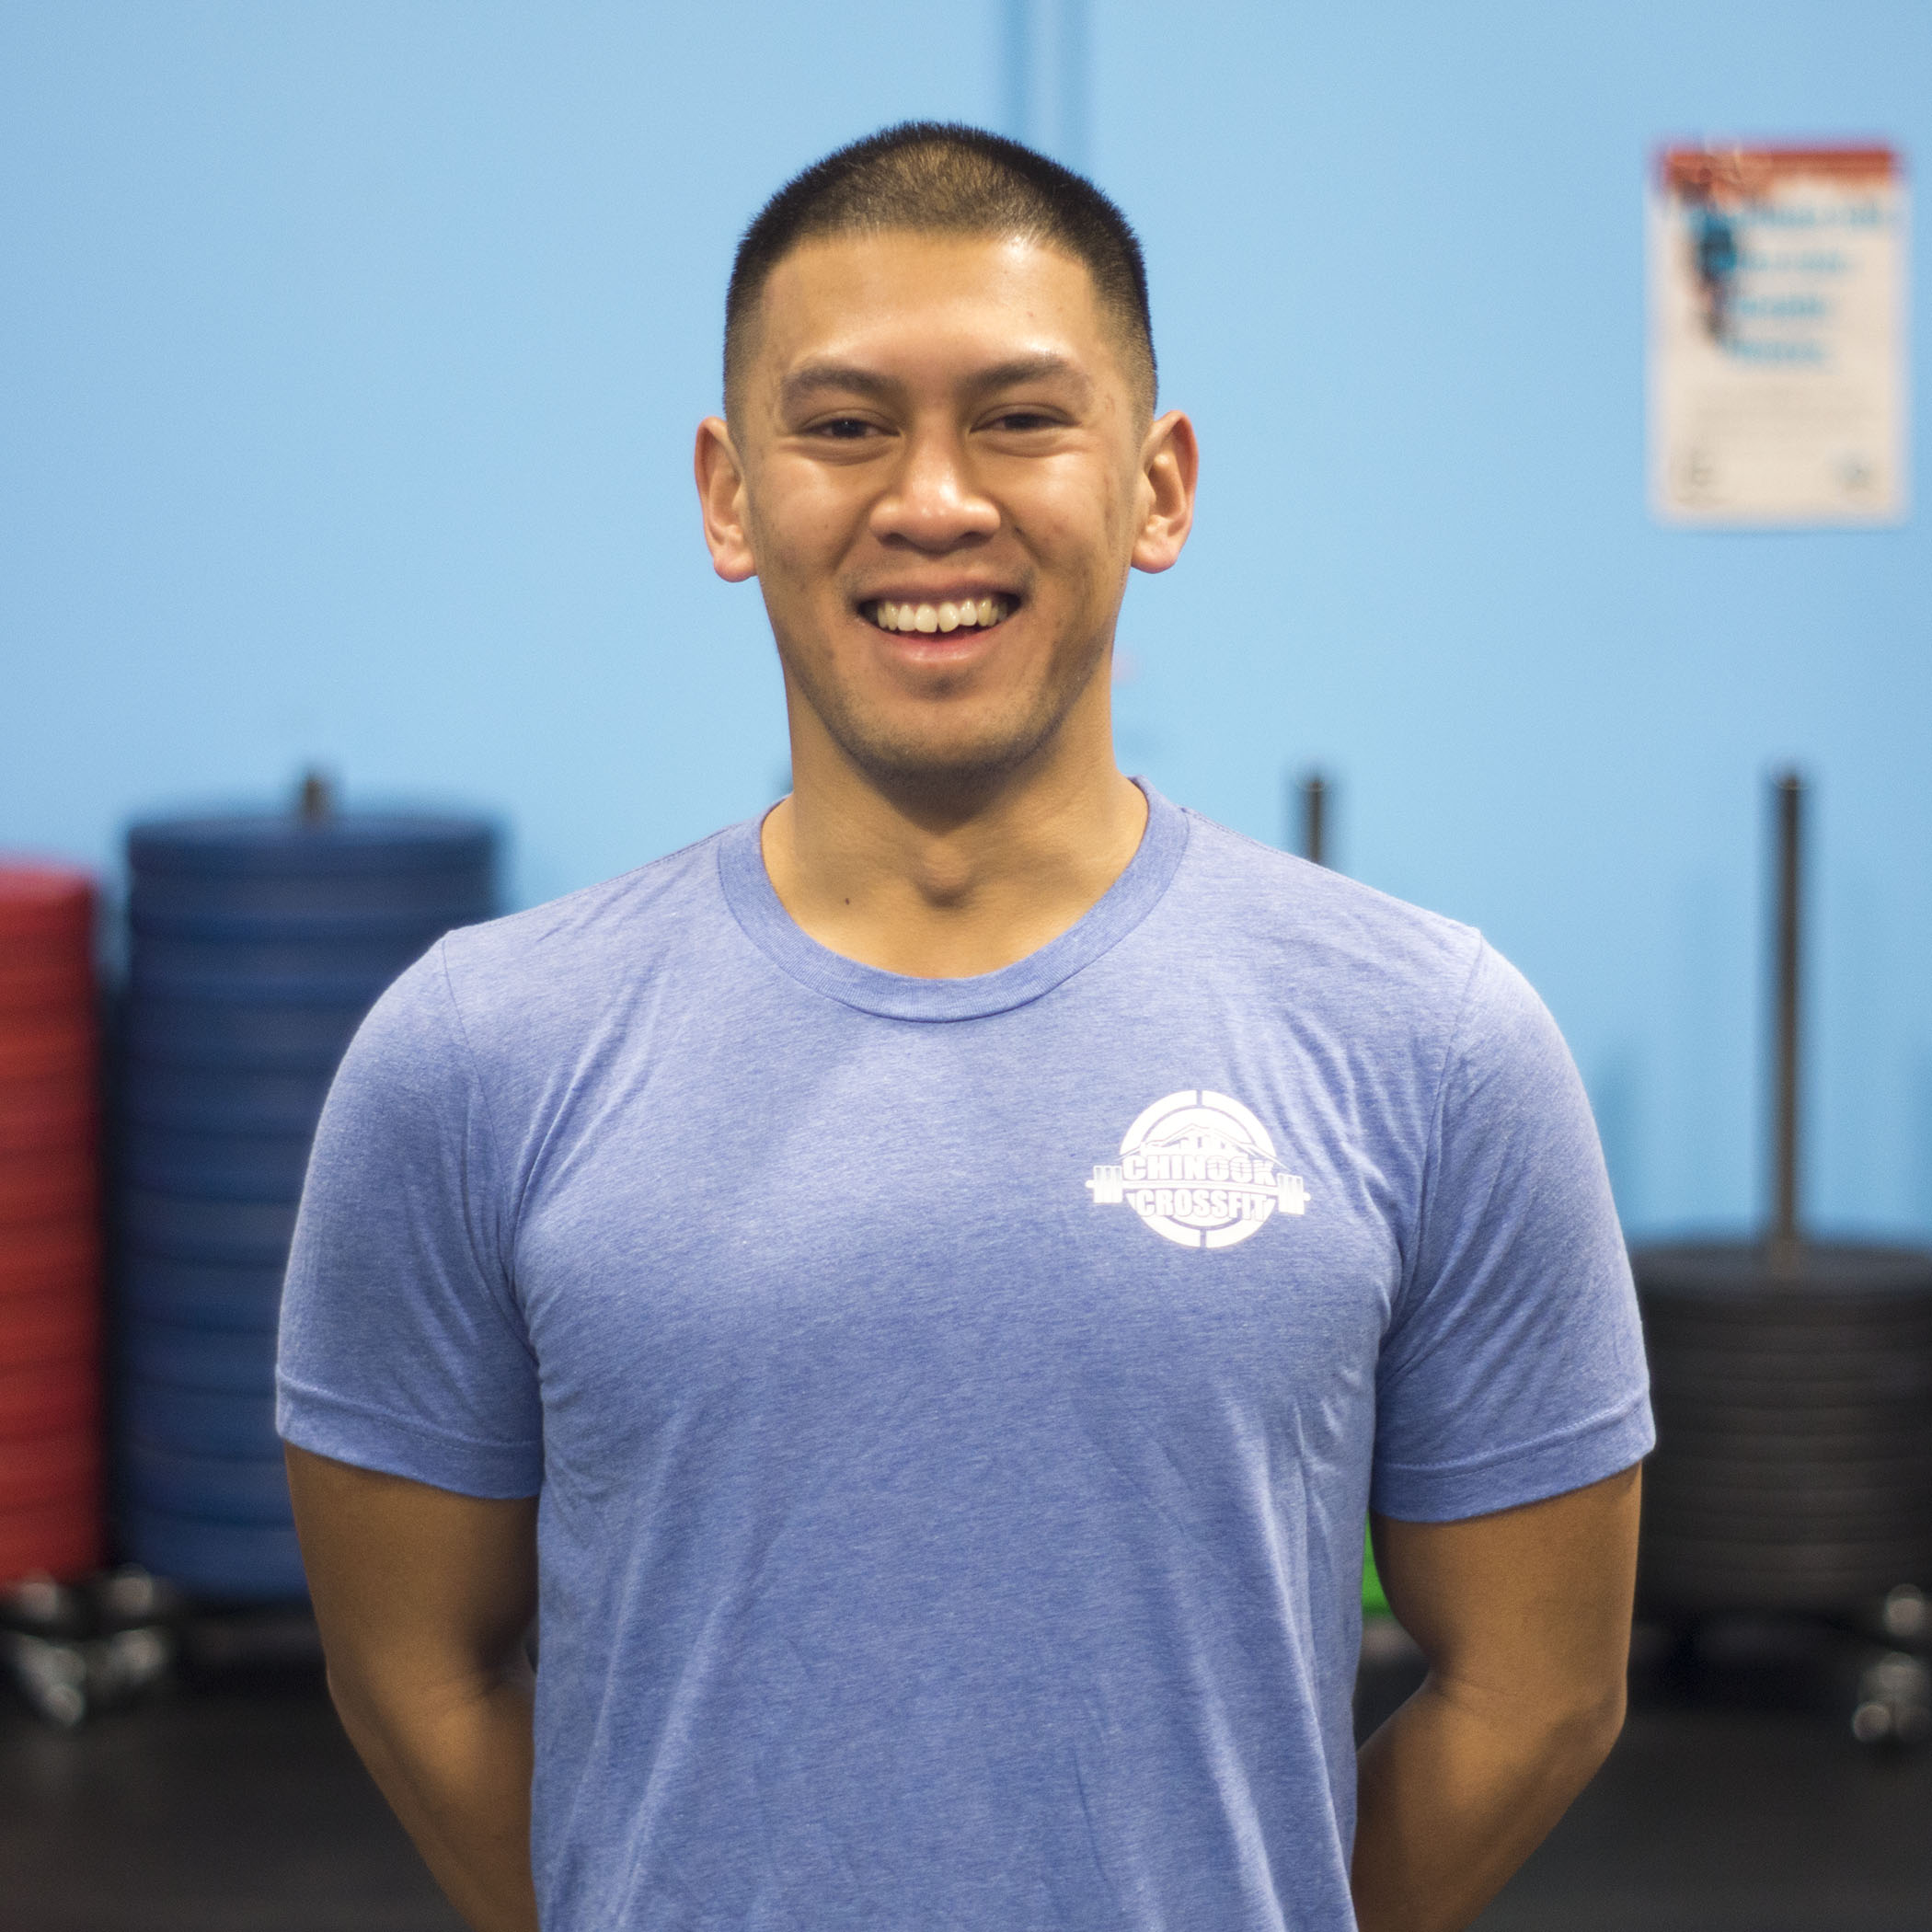 ALBERT BATUYONG - COACHJust a couple years ago, if you asked Albert if coaching was a goal of his the answer would've been no. But Albert saw the most of an opportunity which is just one of the many ways CrossFit has bettered his life, to which his approach is no secret - work hard and play just as hard. He applies this to his own personal training and now looks forward to help collectively improve the health and fitness of our CrossFit family together.CrossFit Level 1 Trainer